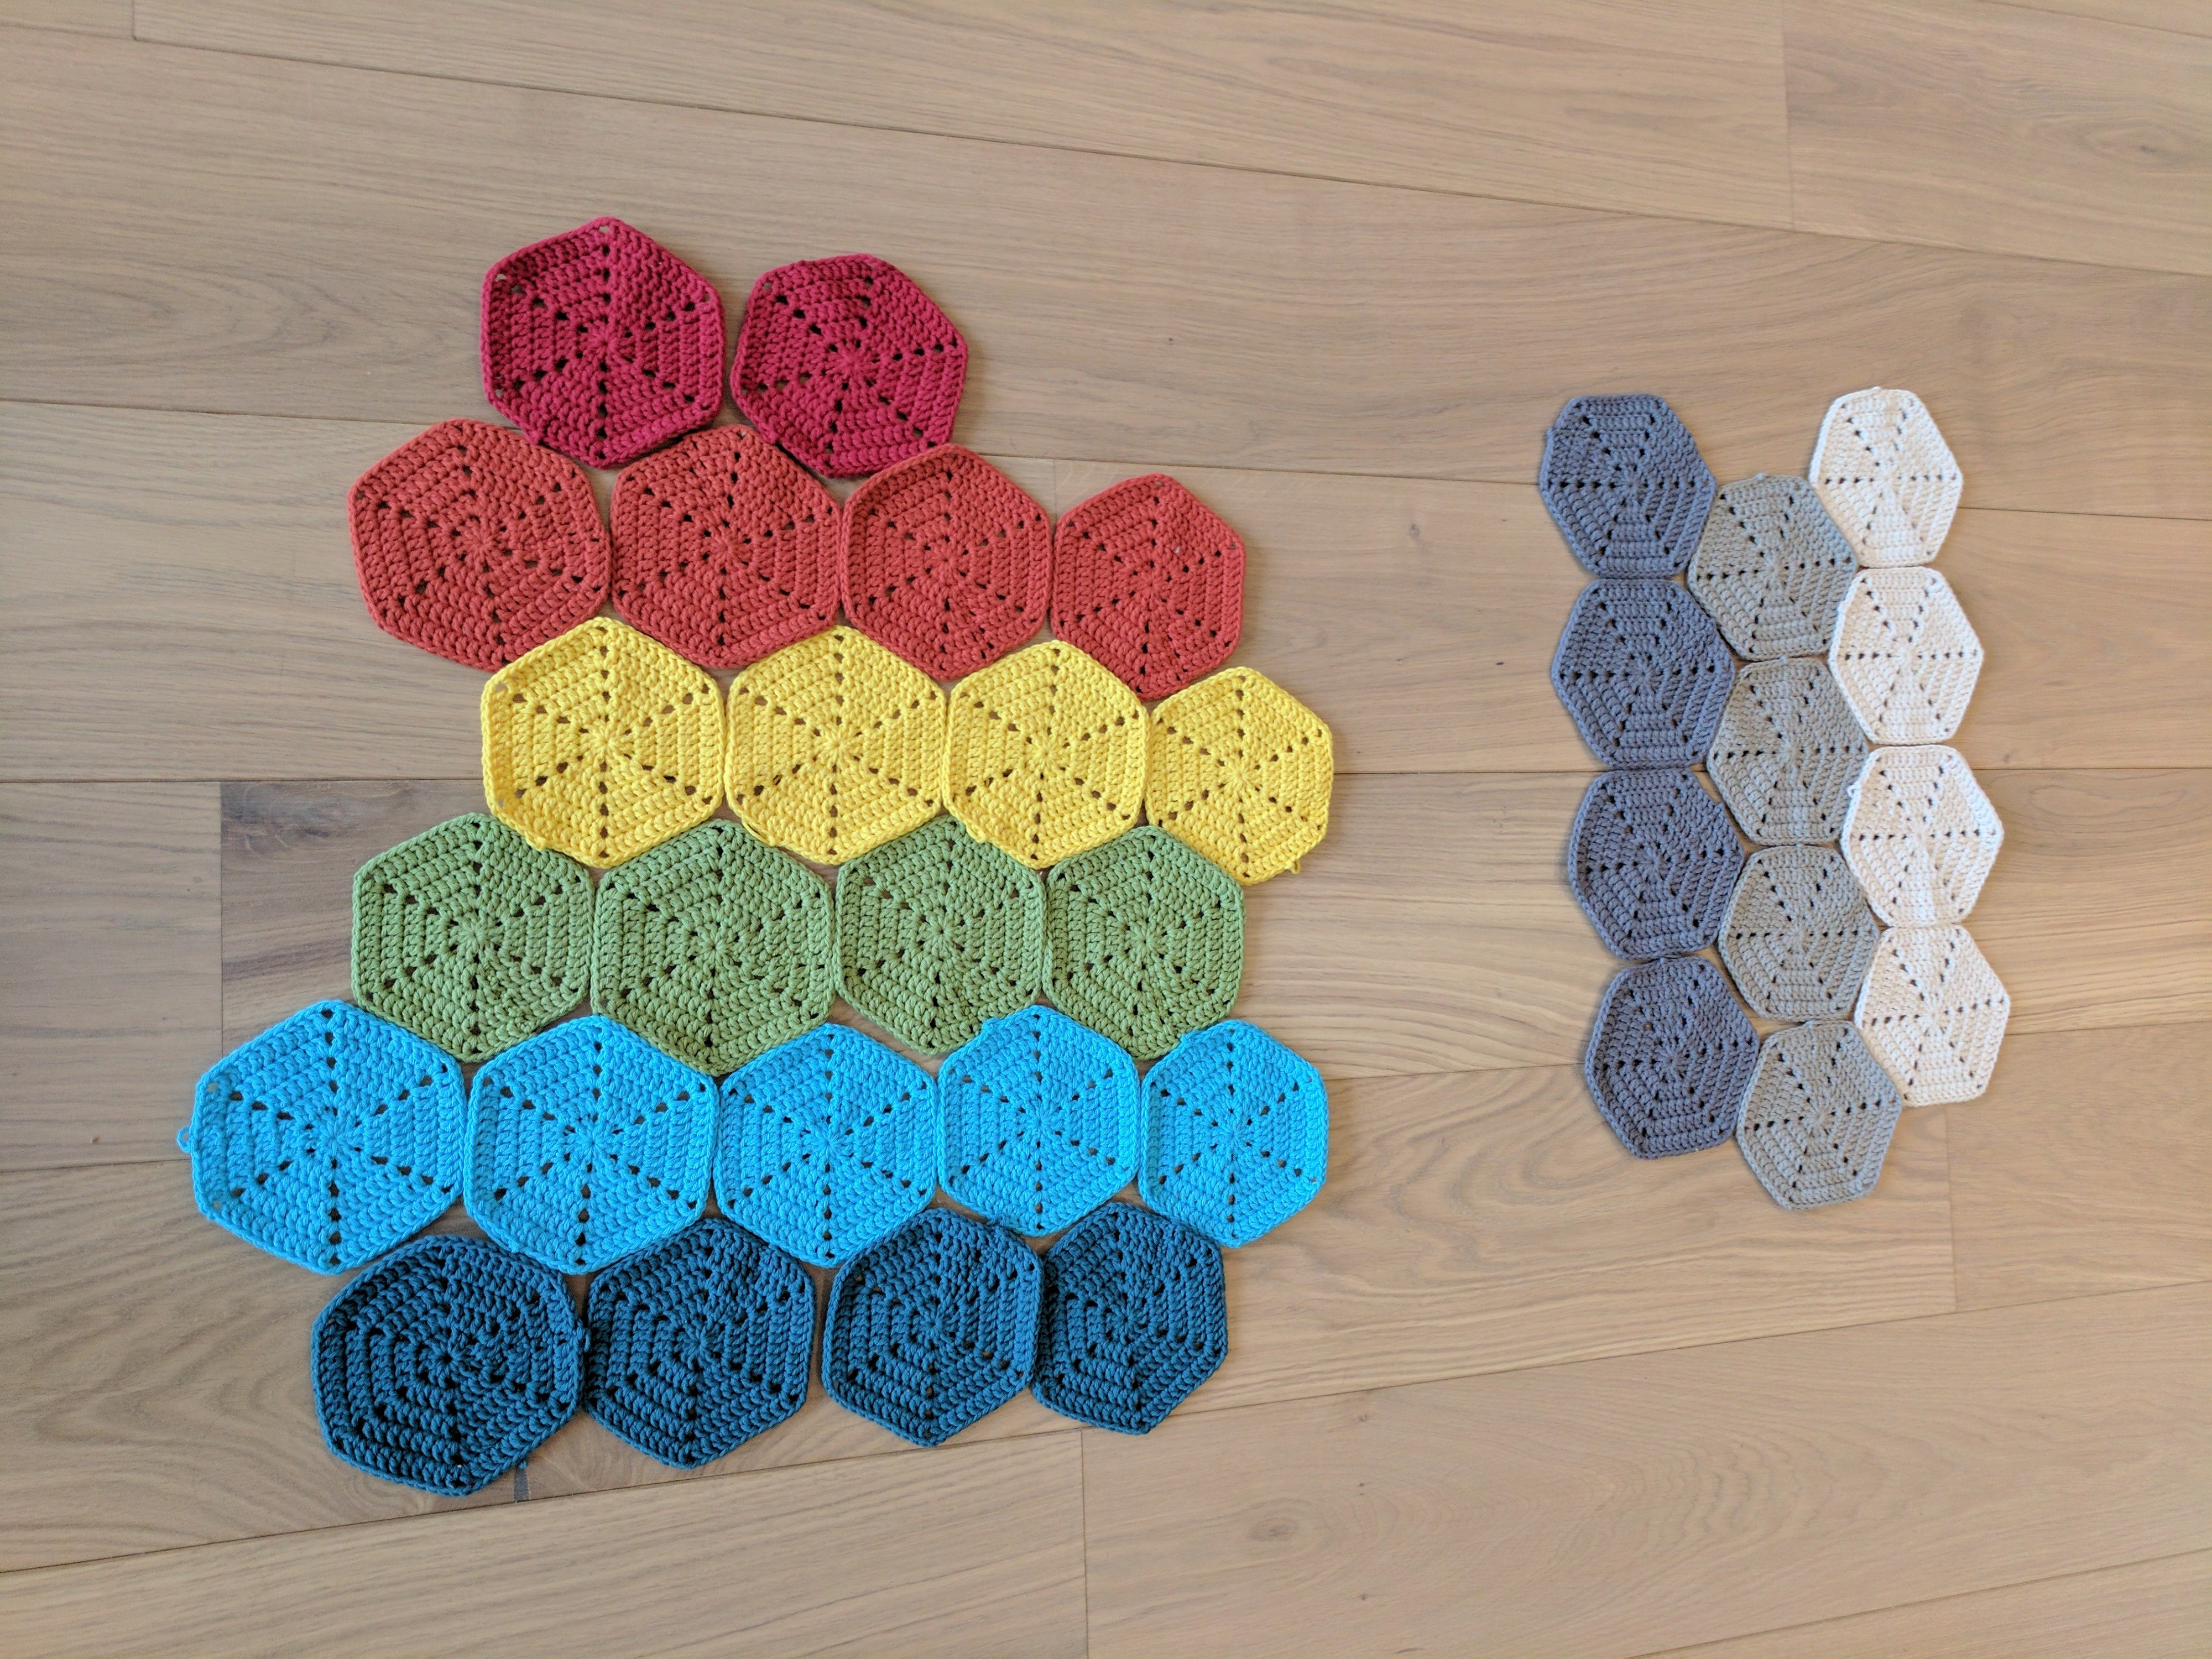 Some practice hexagons I made.